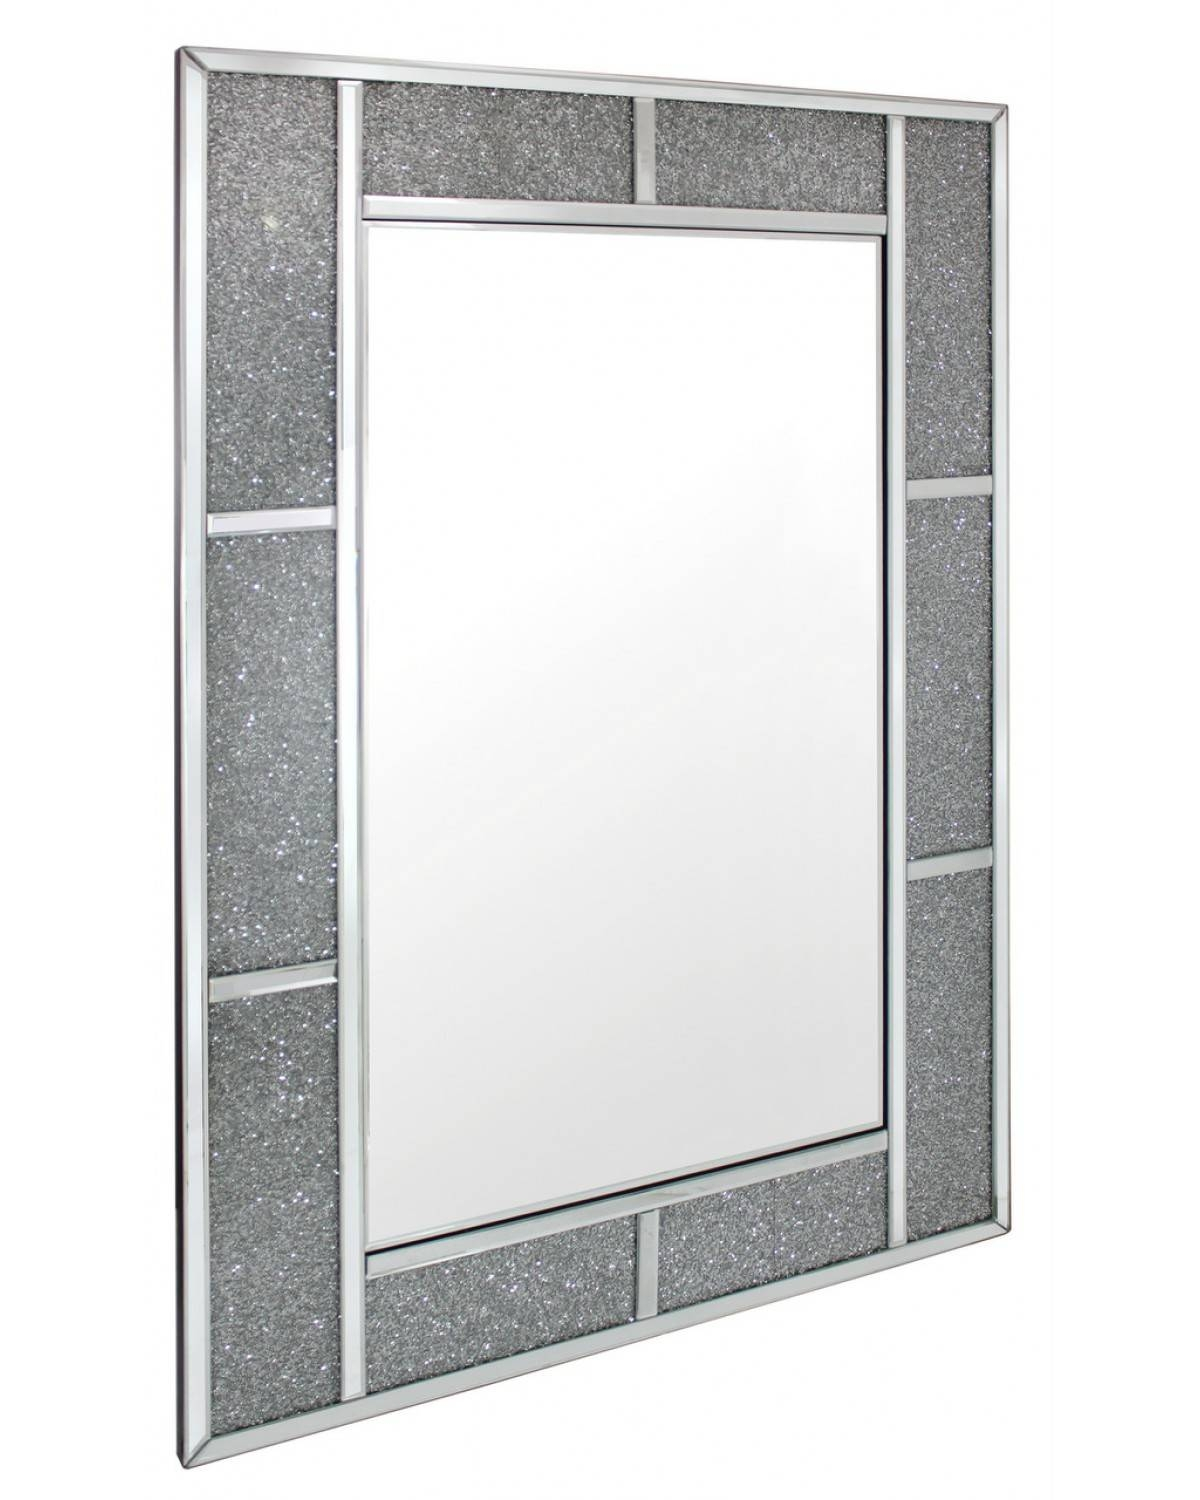 Milano Crystal Brick Effect Wall Mirror intended for Mirrors With Crystals (Image 12 of 15)